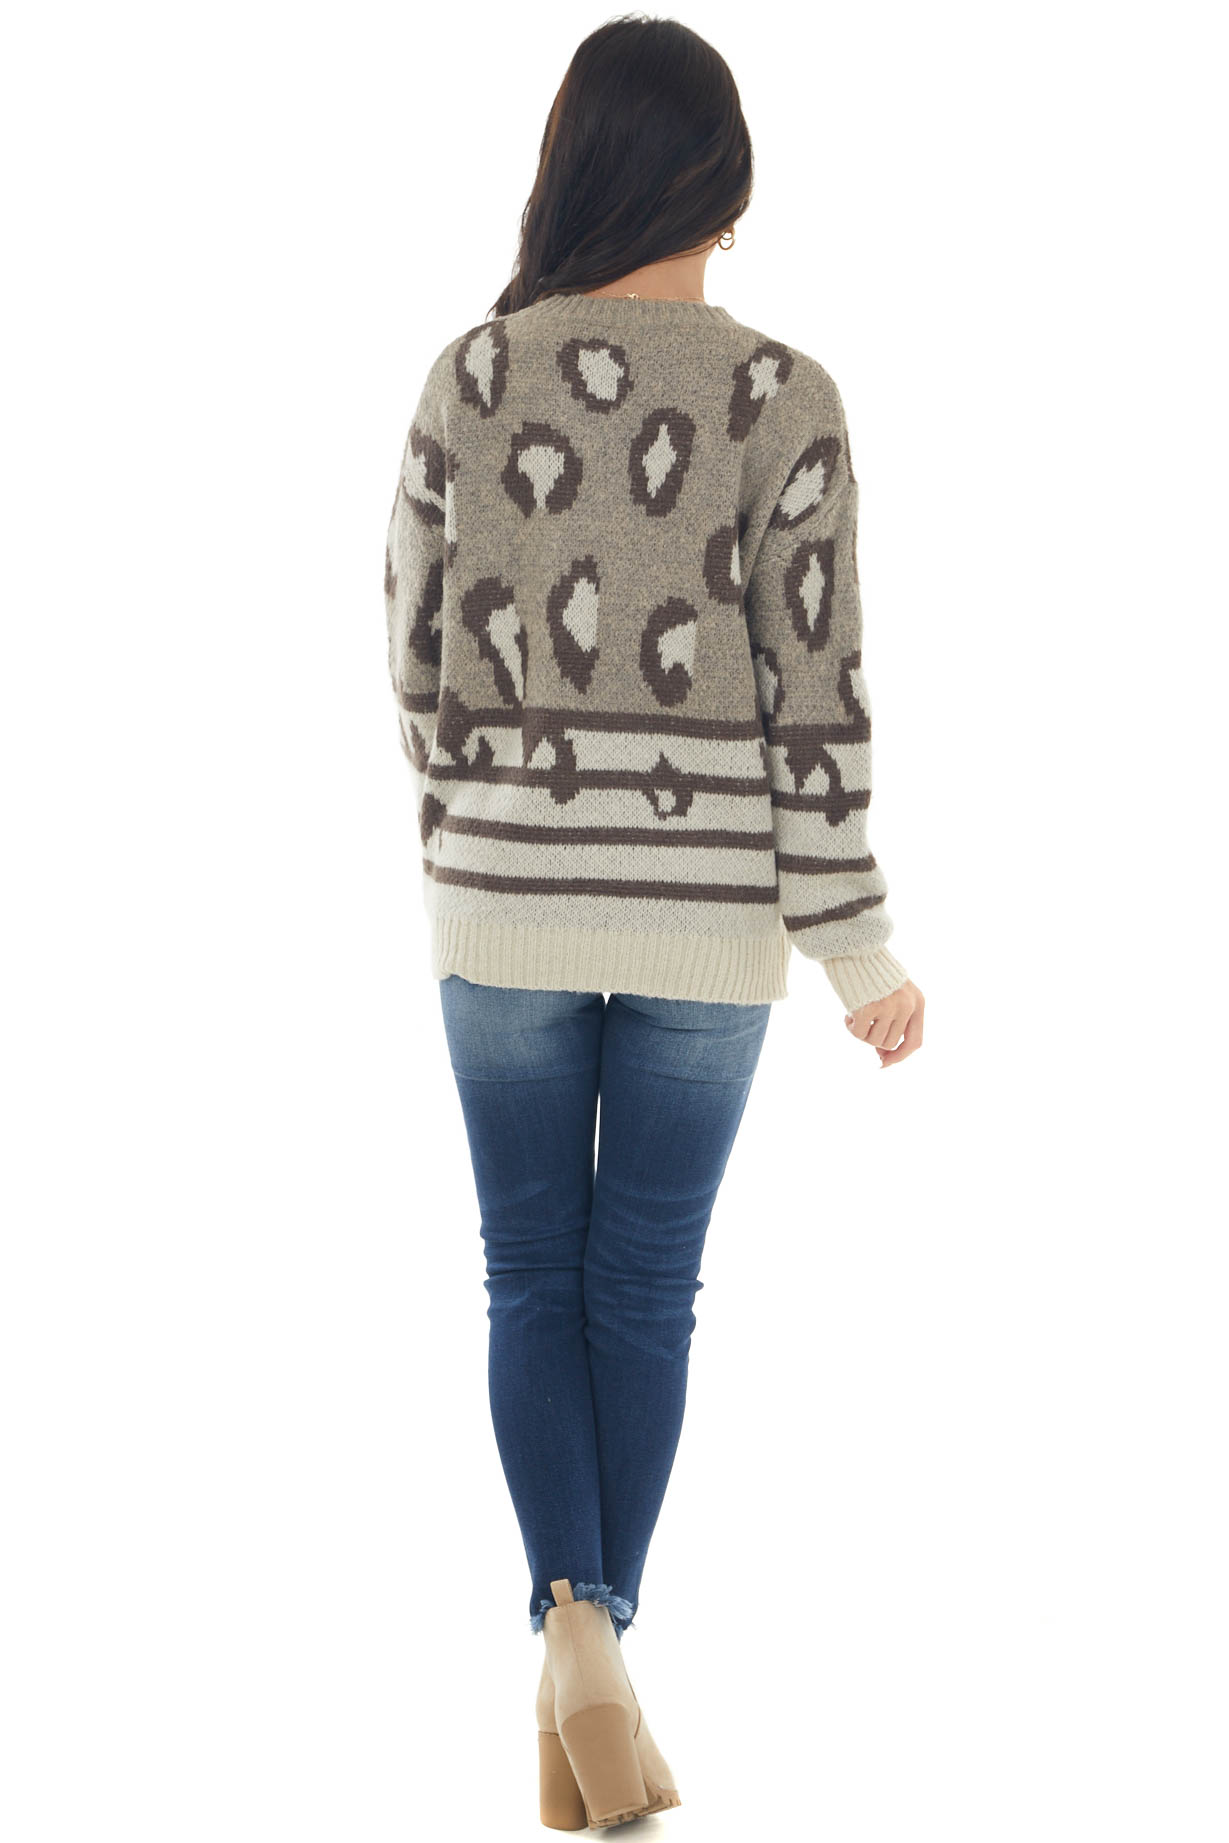 Taupe Leopard Print Striped Soft Knit Sweater